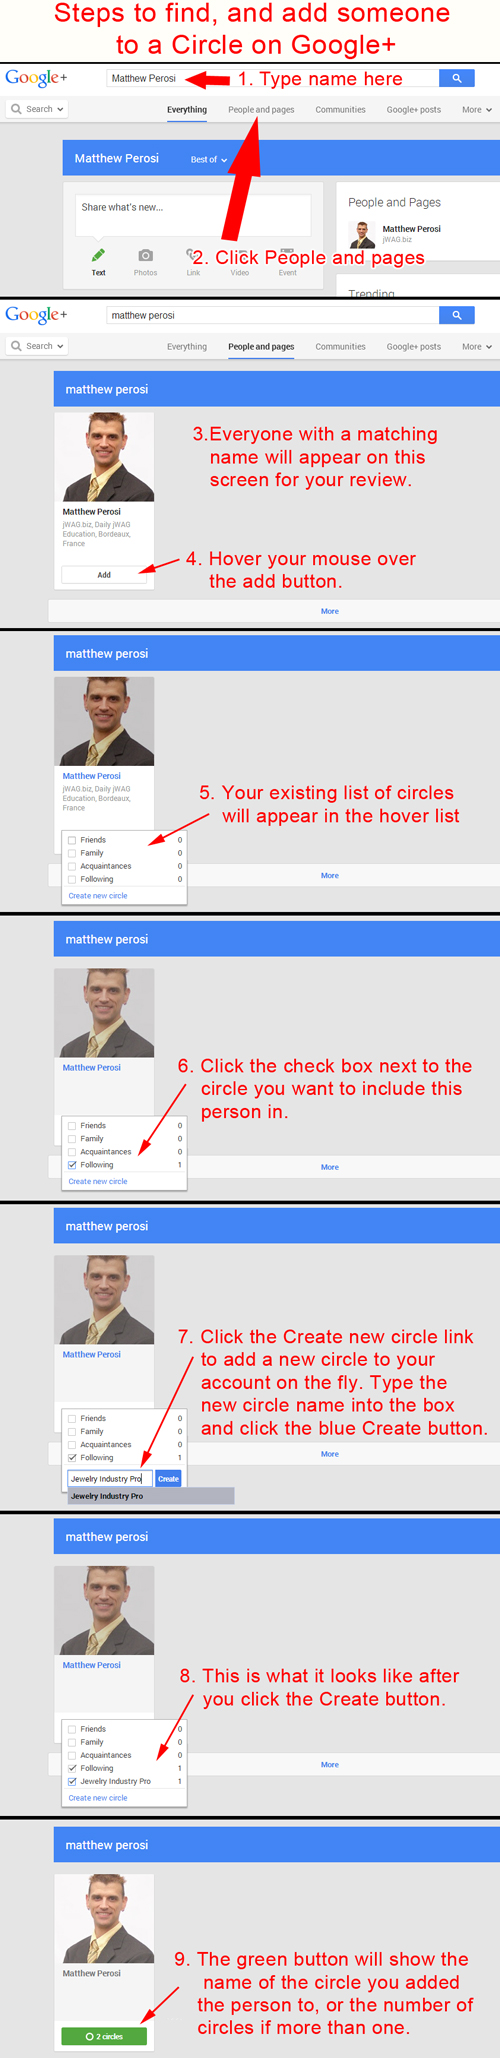 Adding People to Your Circles on Google Plus 3458-916-searching-for-people